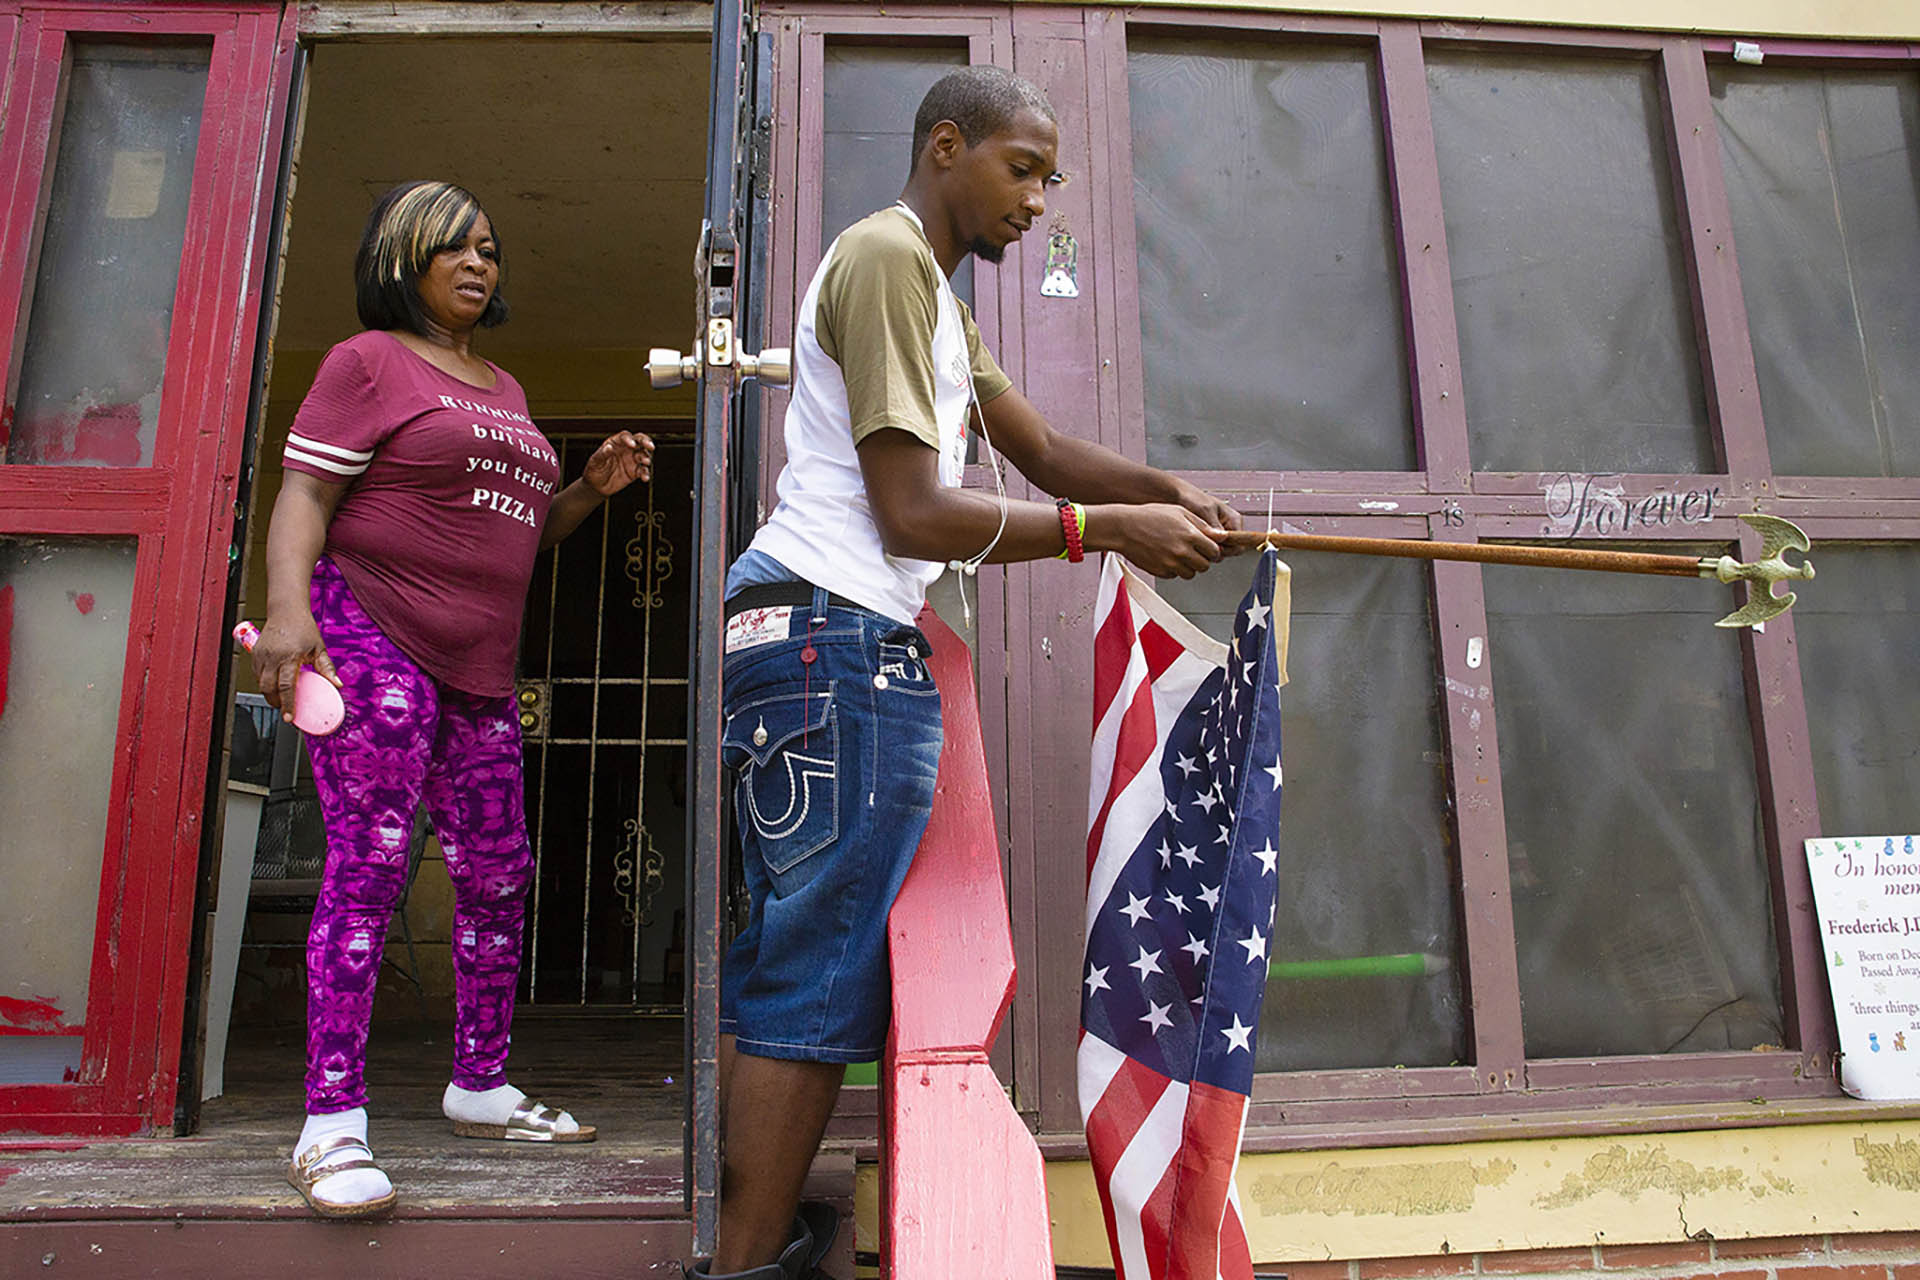 Marilyn Martin, left, assists her nephew, Lee Eric Evans, as he hangs a U.S. flag outside of Maritn's home on Davis Street in Jackson, Miss. Tuesday, July 3, 2018. (Photo by Eric J. Shelton/GroundTruth)